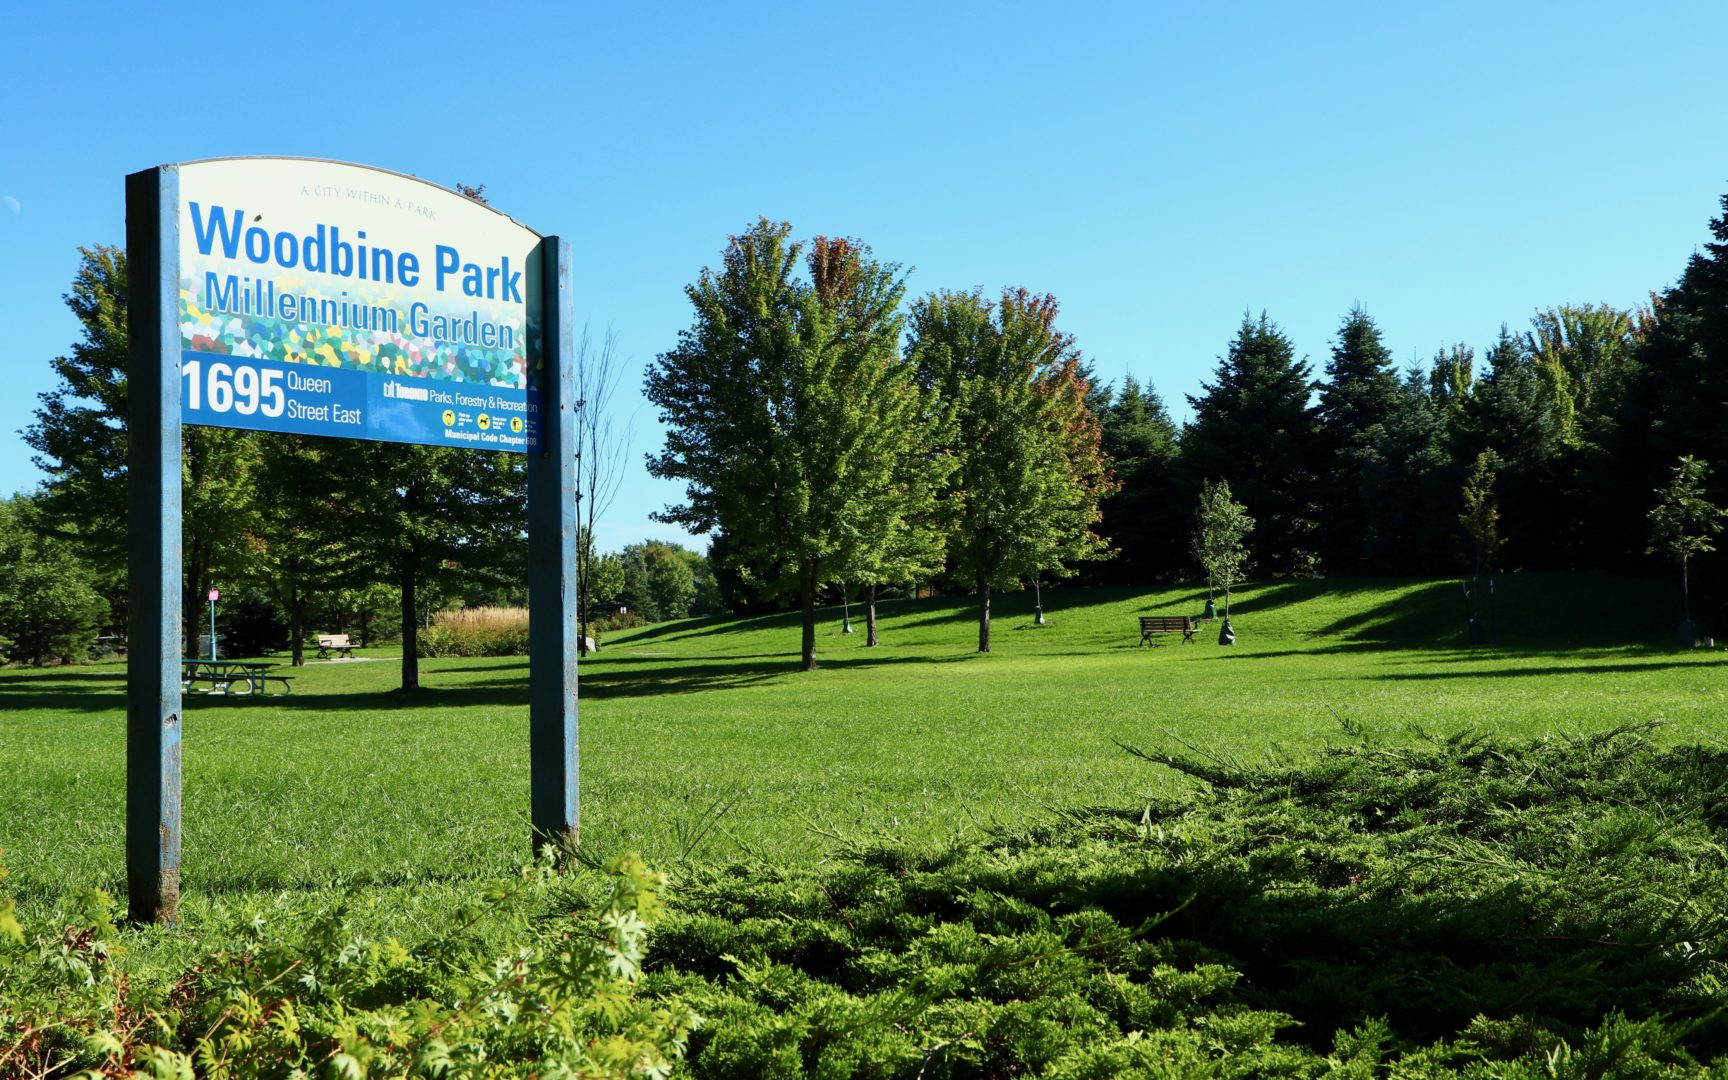 Woodbine Park, Photo by Unknown